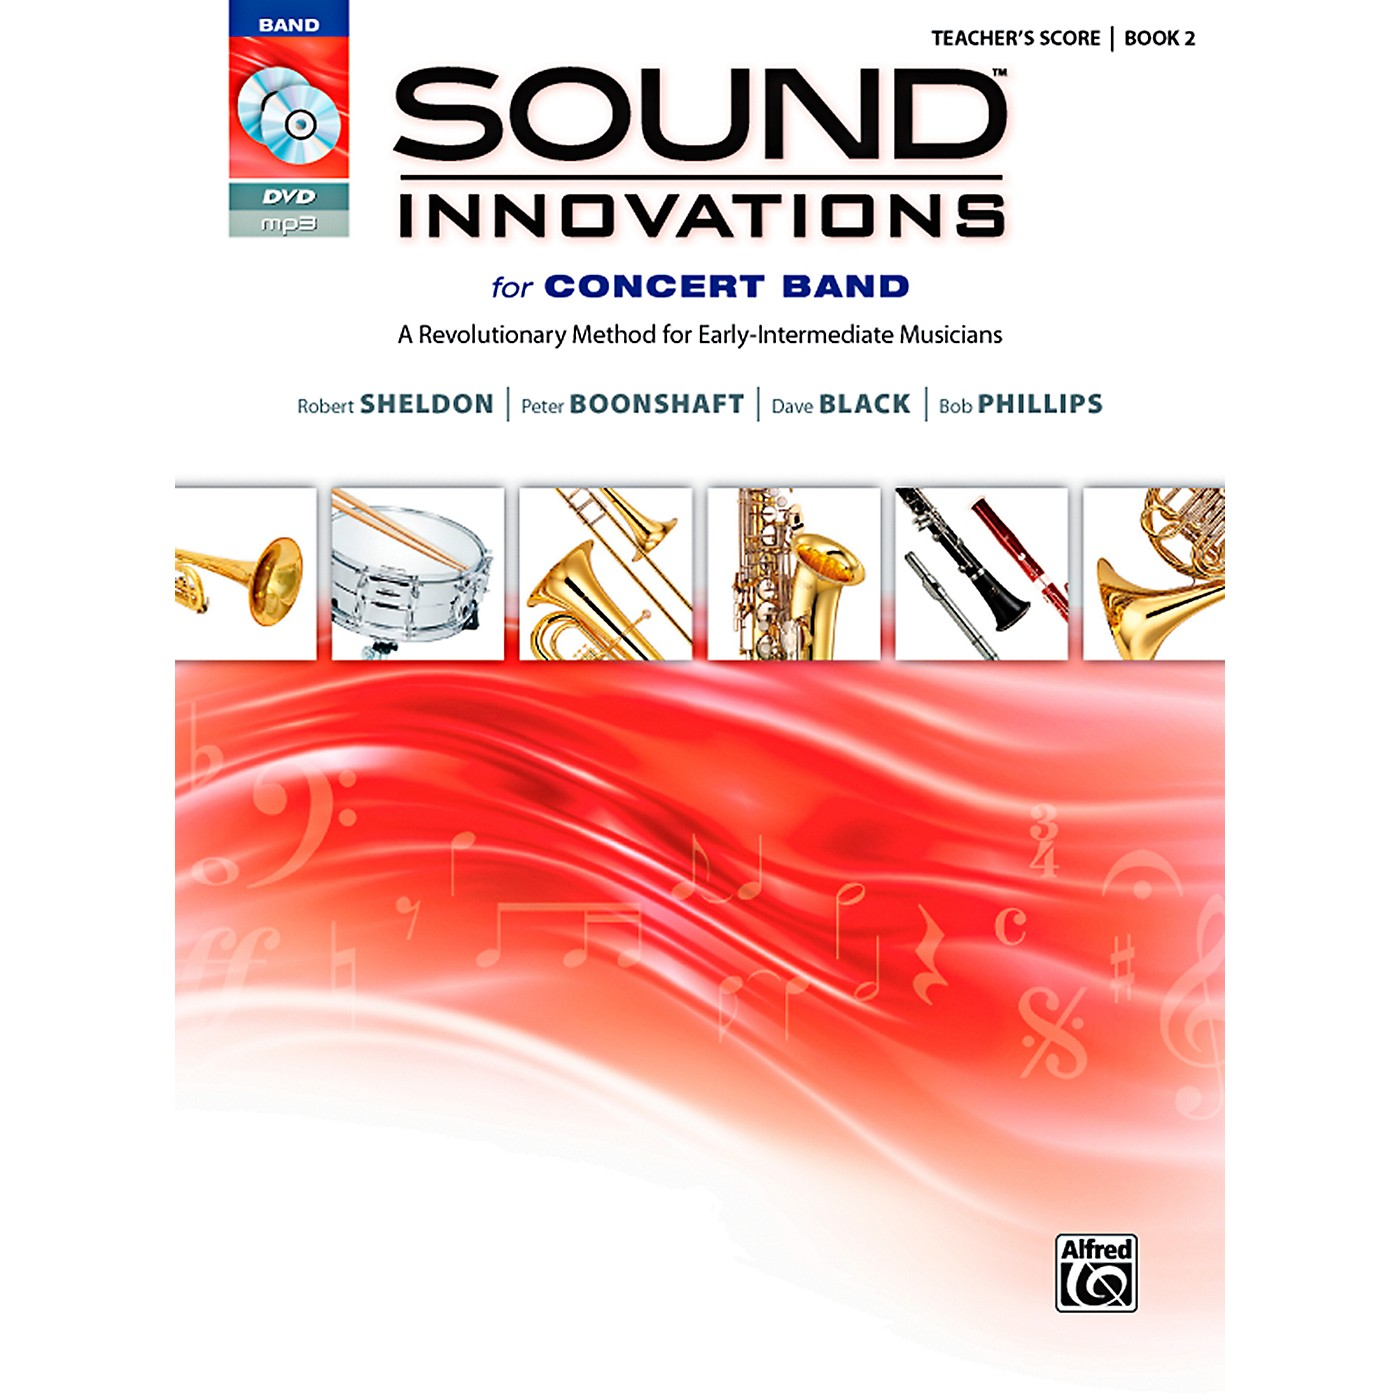 Alfred Sound Innovations for Concert Band Book 2 Conductor's Score Book thumbnail